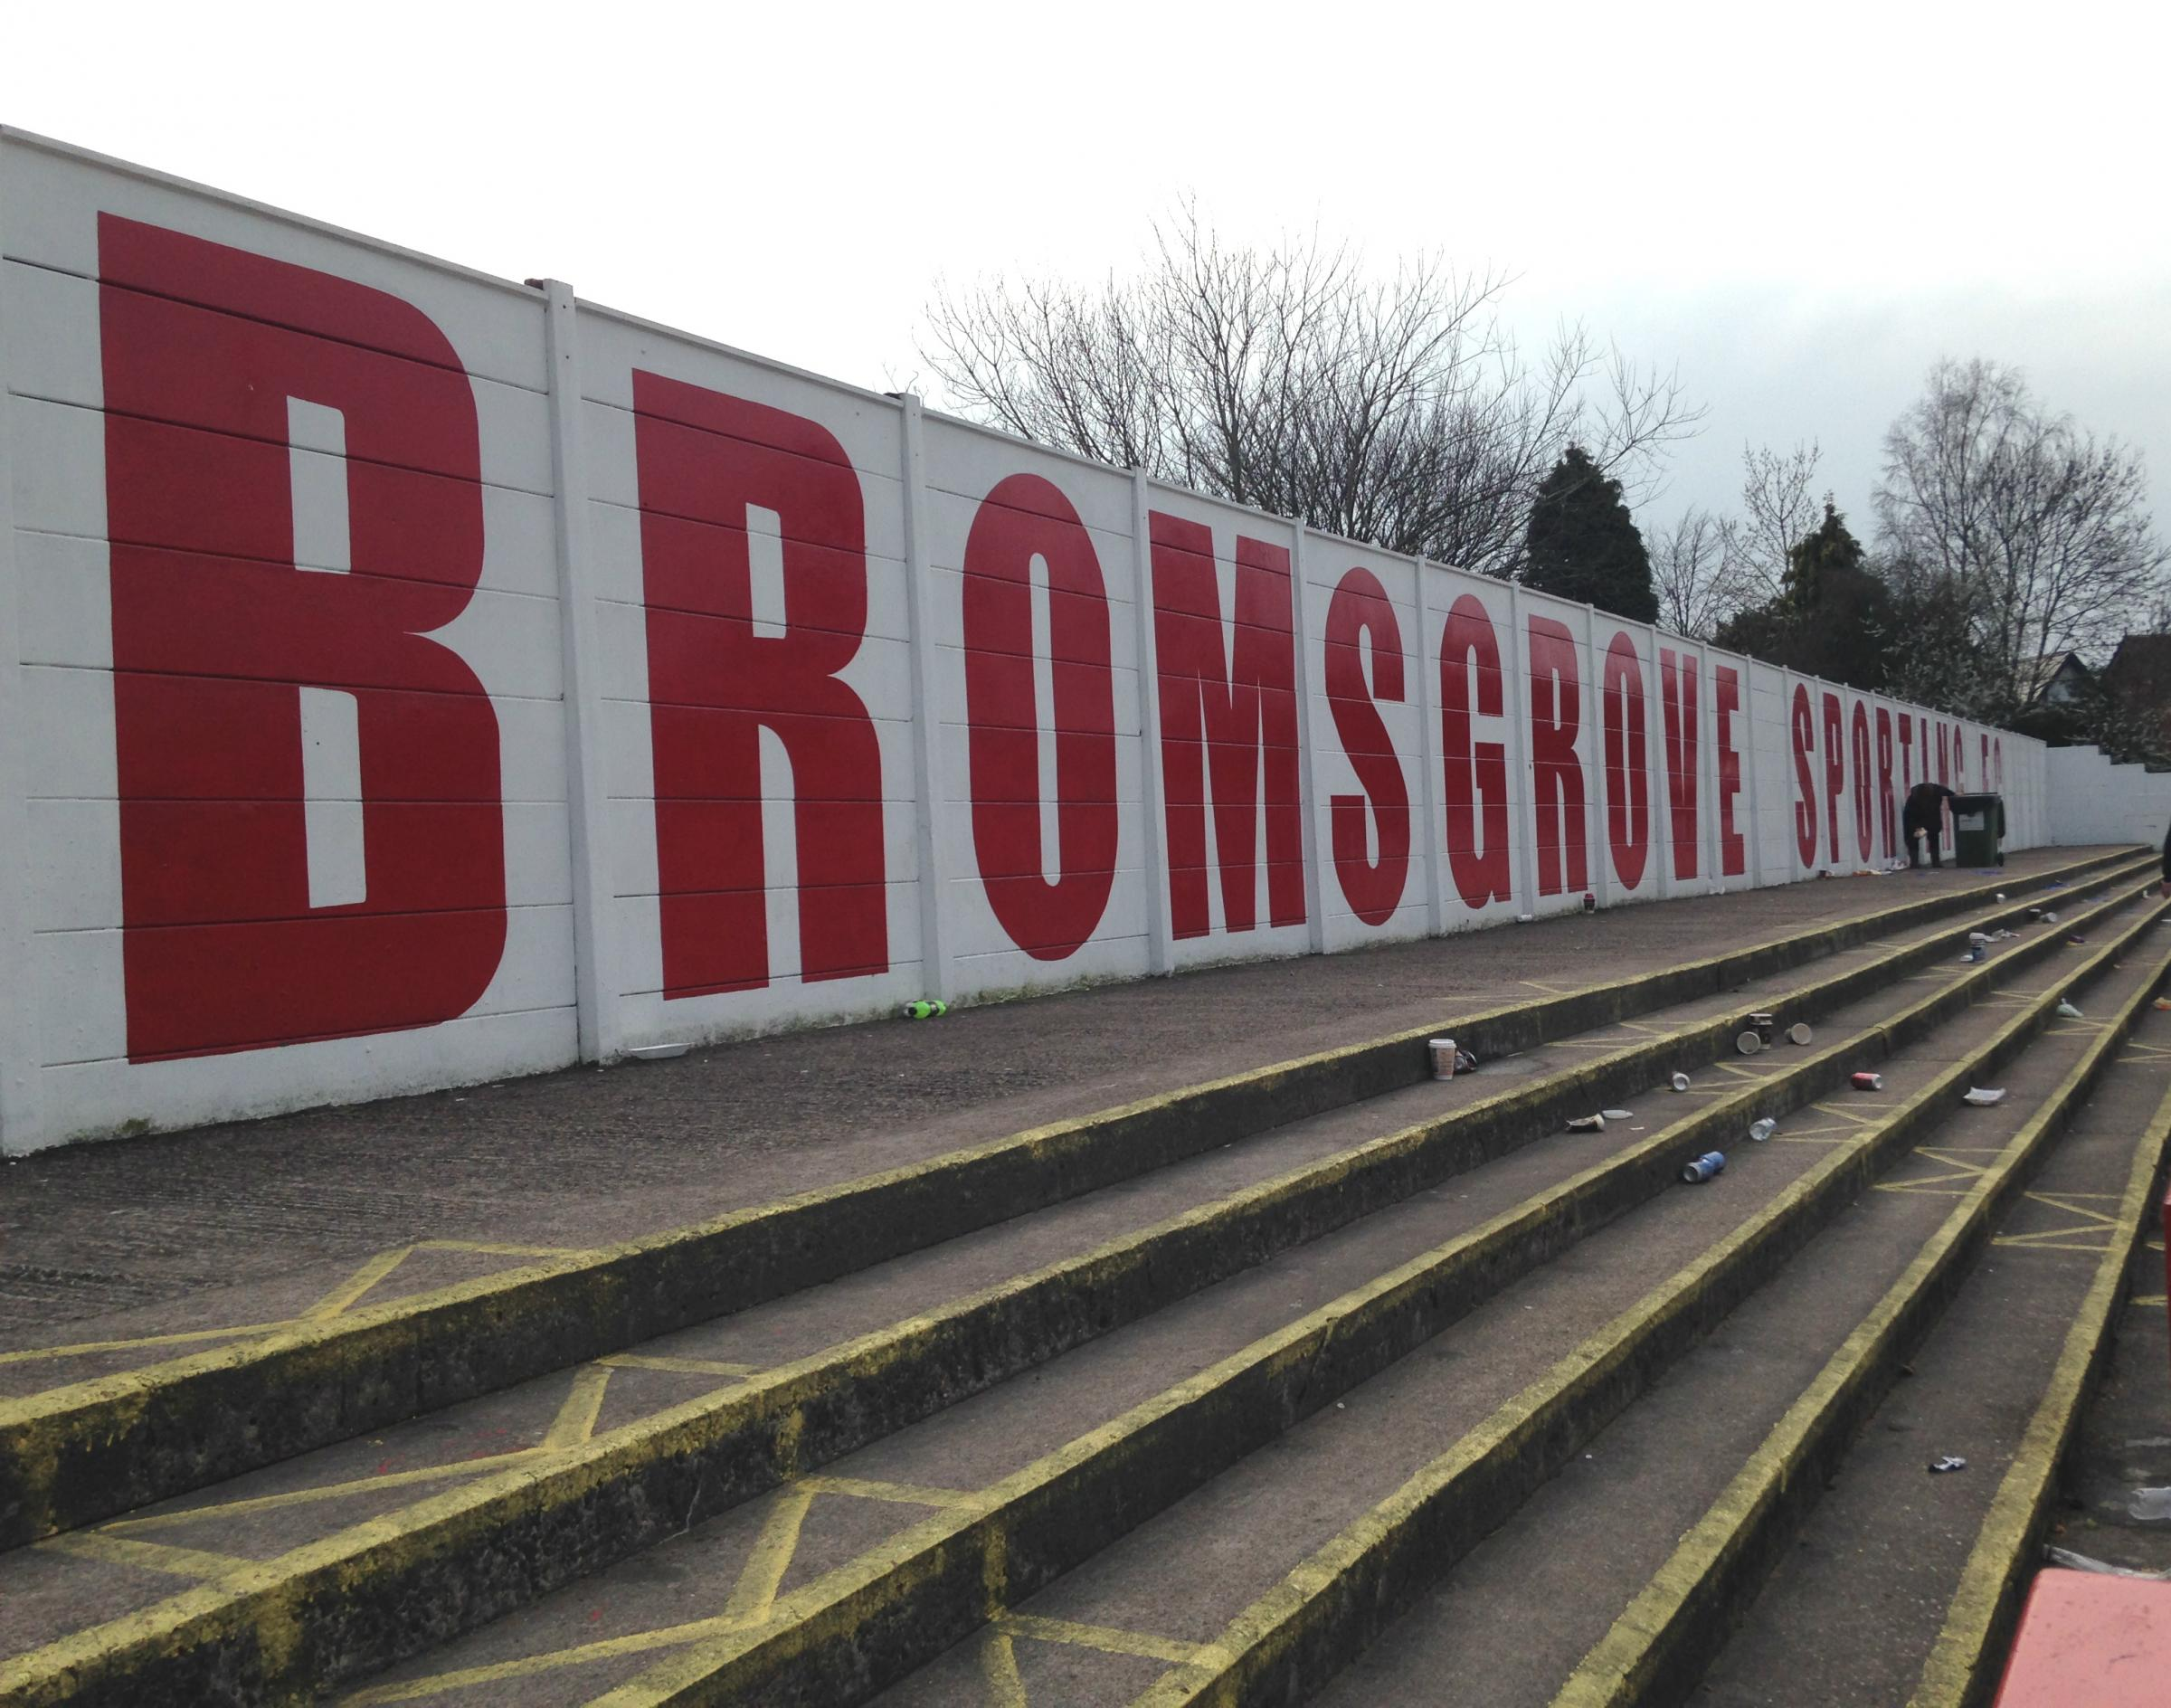 Tuesday's football: Bromsgrove Sporting bid to go four points clear